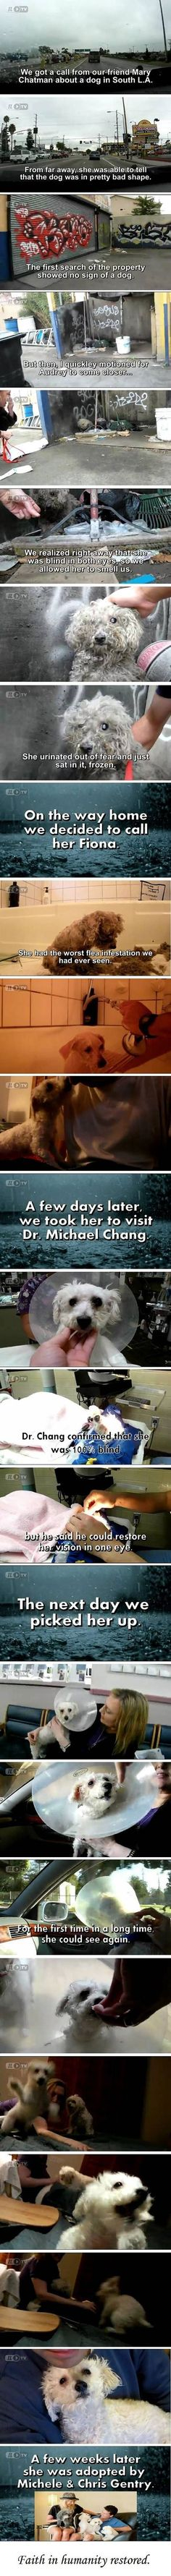 Awesome rescue of a blind dog. heard this on the news awhile back, brought me to tears, now she is with a loving family...GREAT